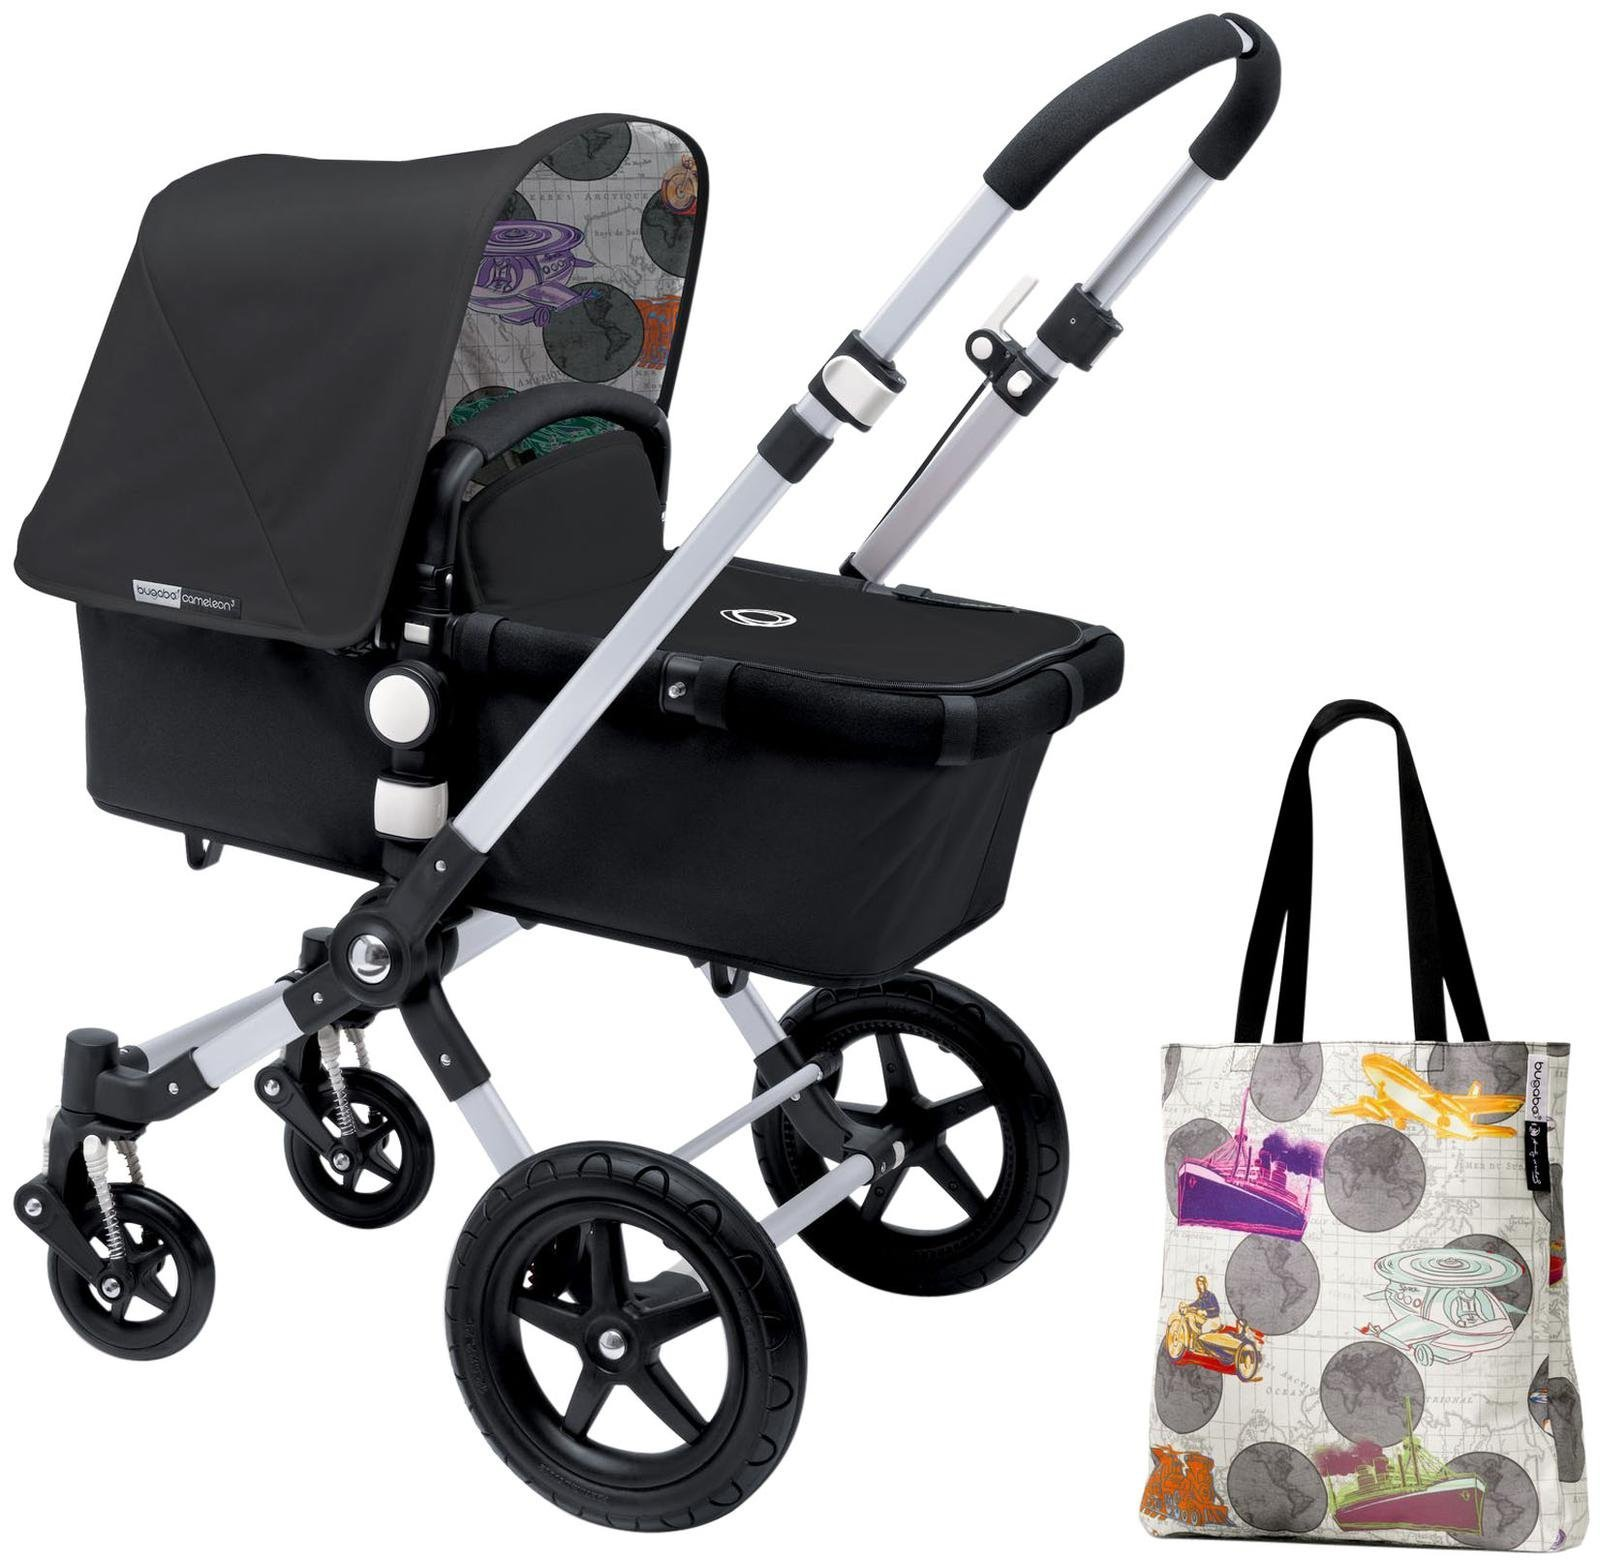 Bugaboo Cameleon3 Accessory Pack - Andy Warhol Dark Grey/Transport (Special Edition)